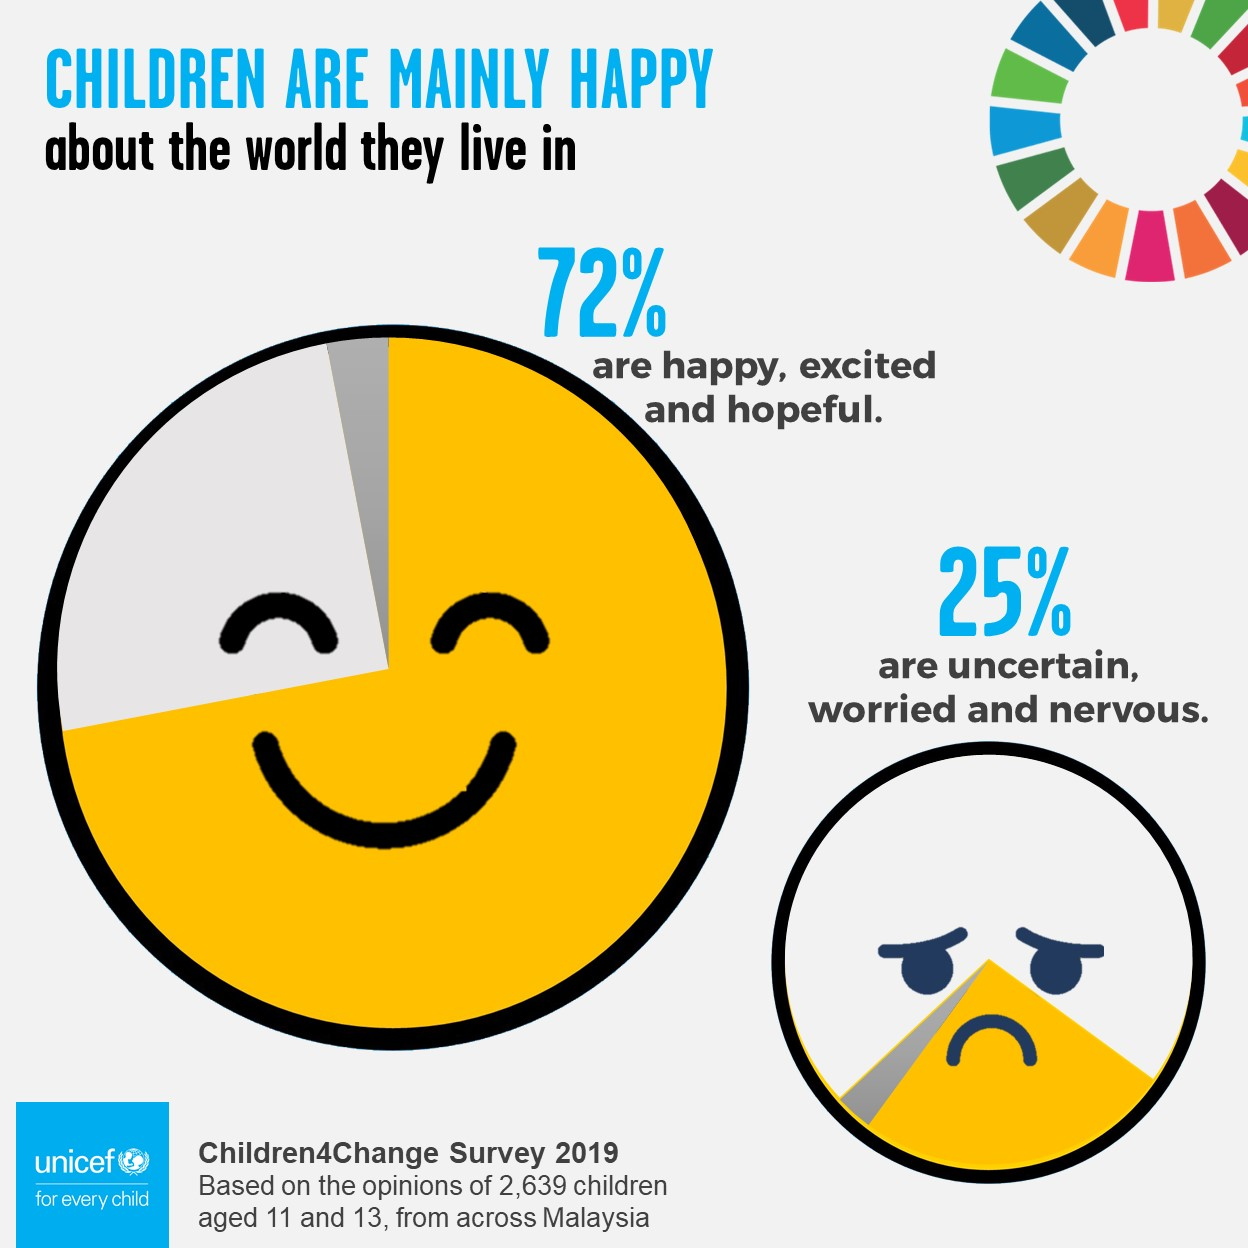 Children4Change Poll 2019 - My feelings